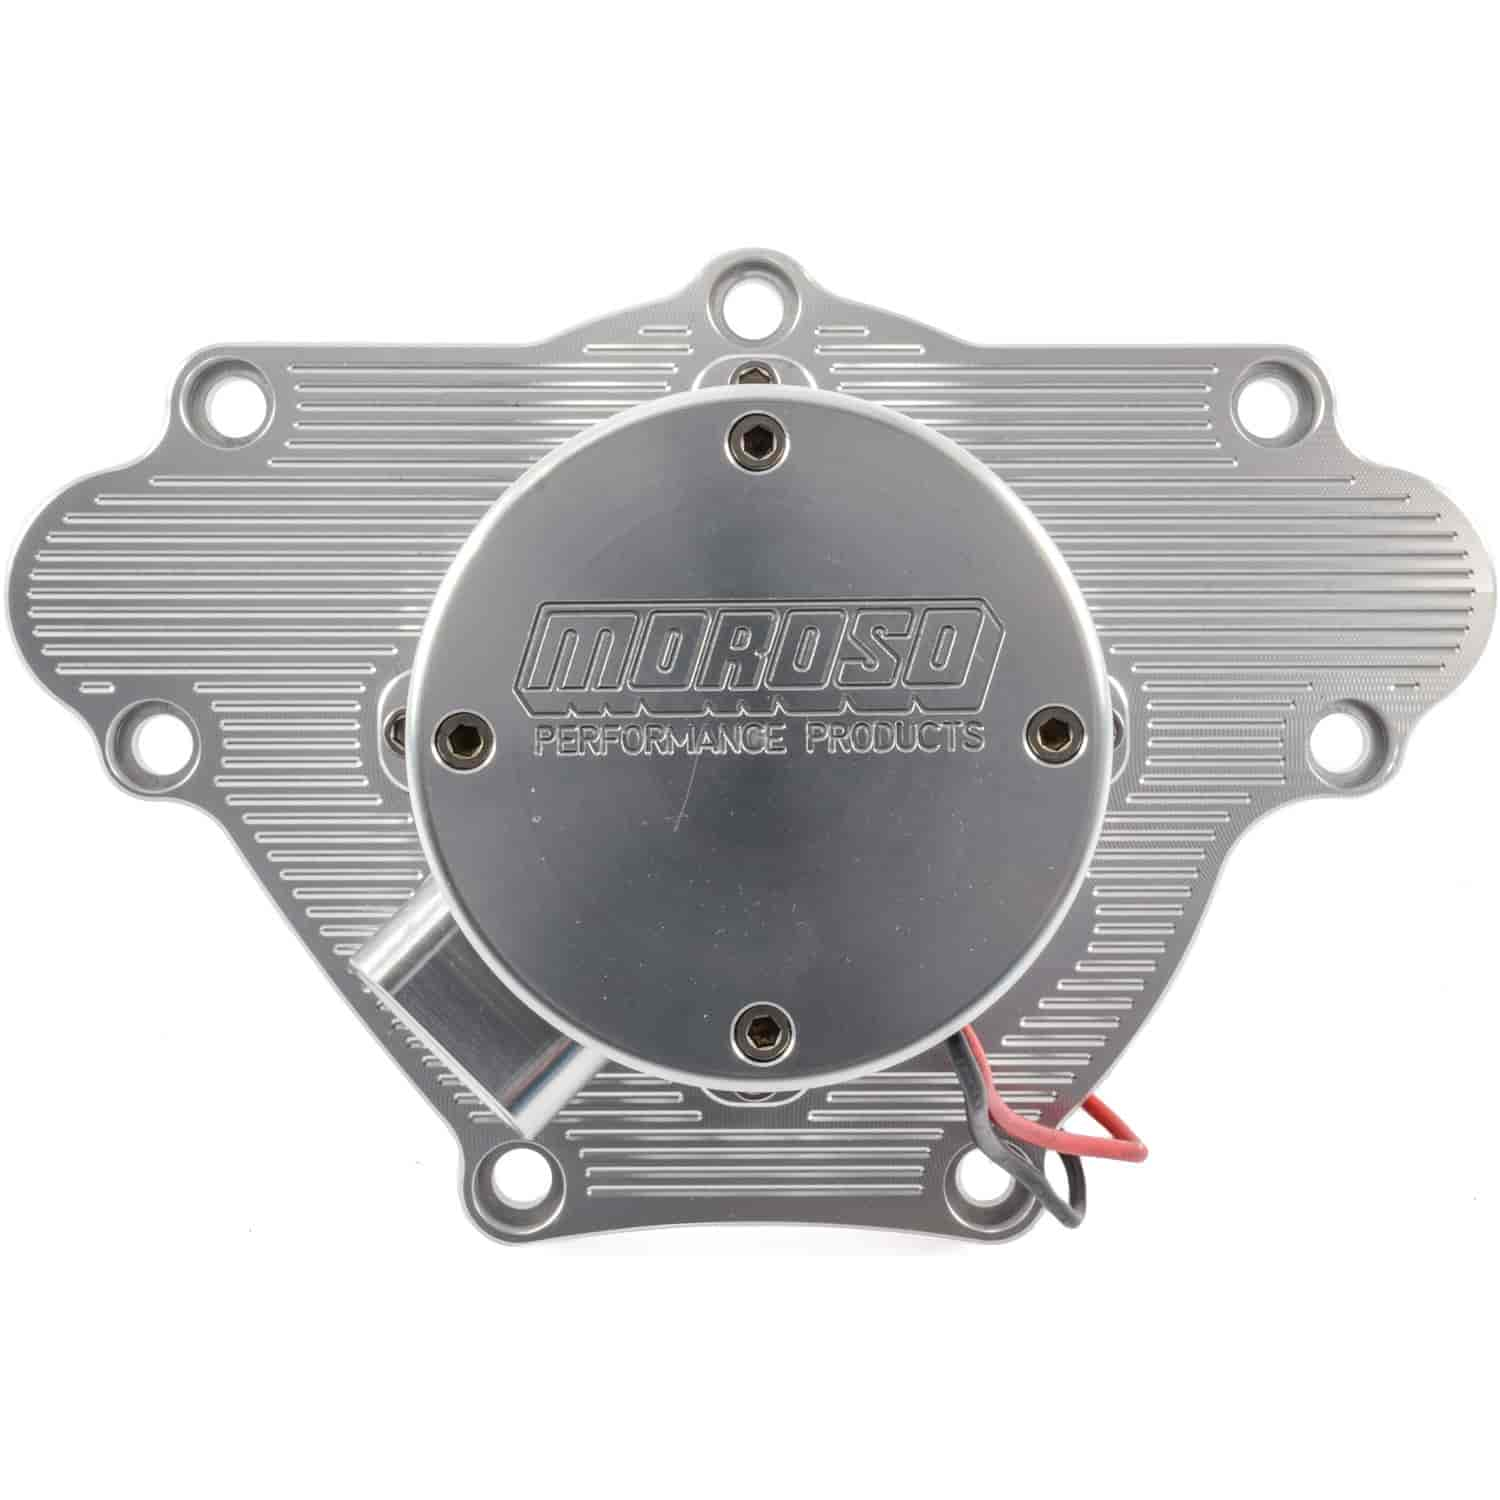 Moroso 63514 Remote Water Pump Adapter Kit for Chrysler 273-360 Series Engine